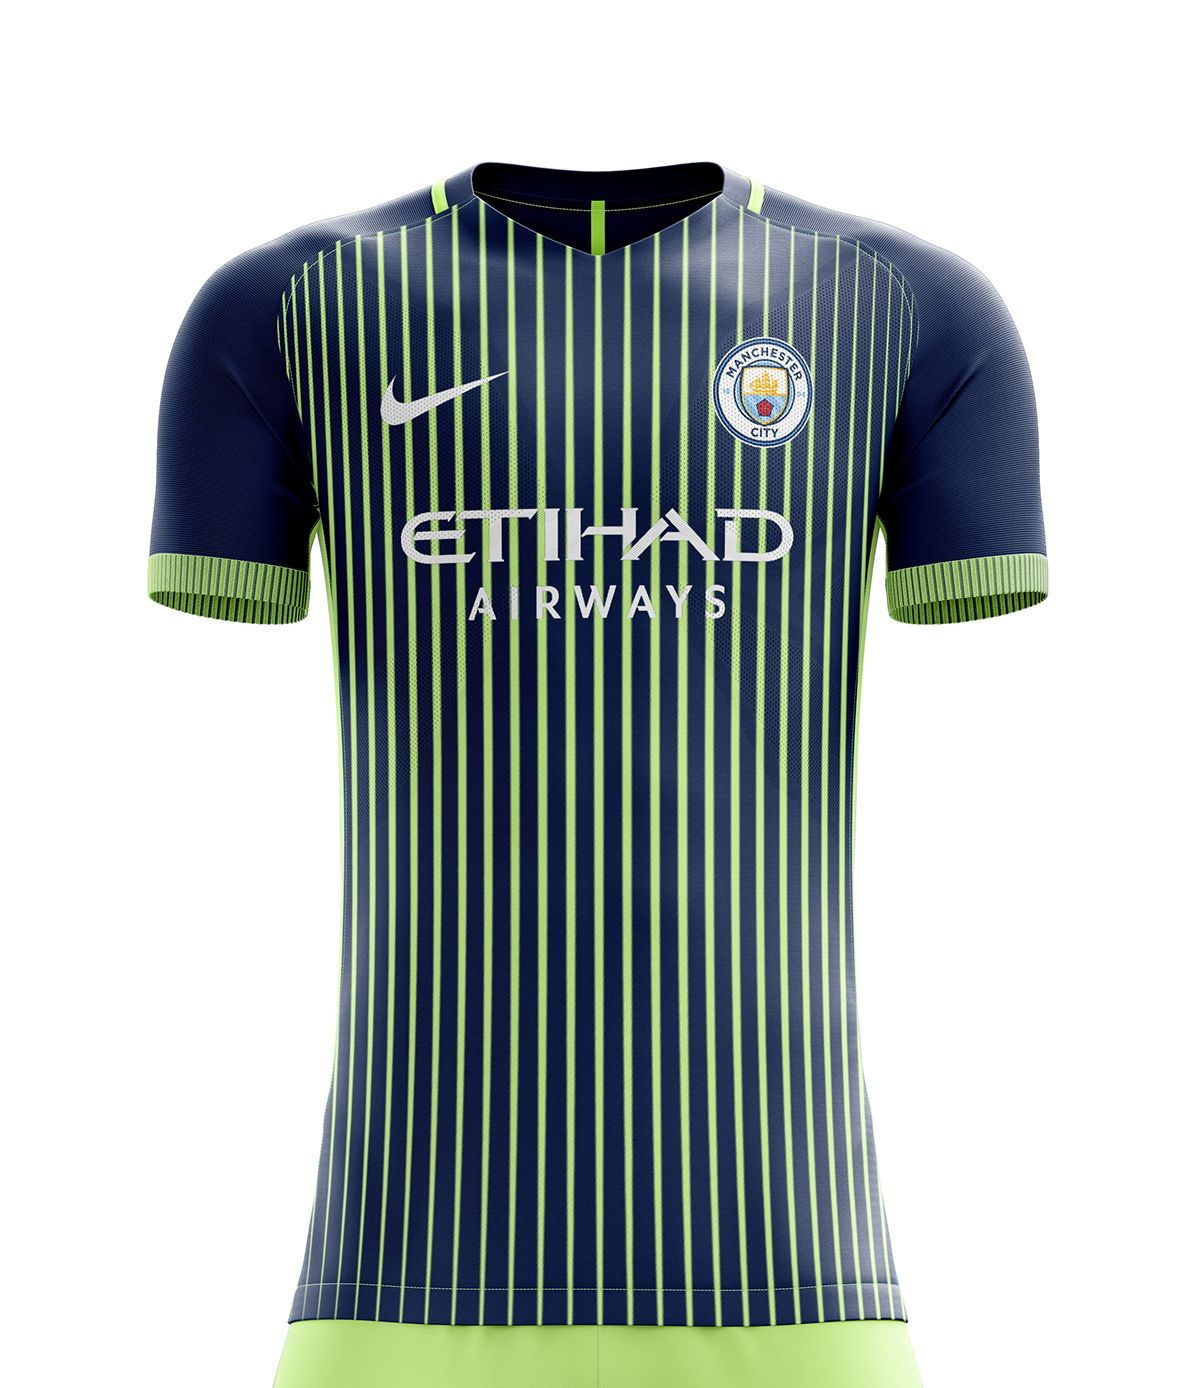 Manchester City Football Kit 18 19. on Behance  f9cd5070f998f